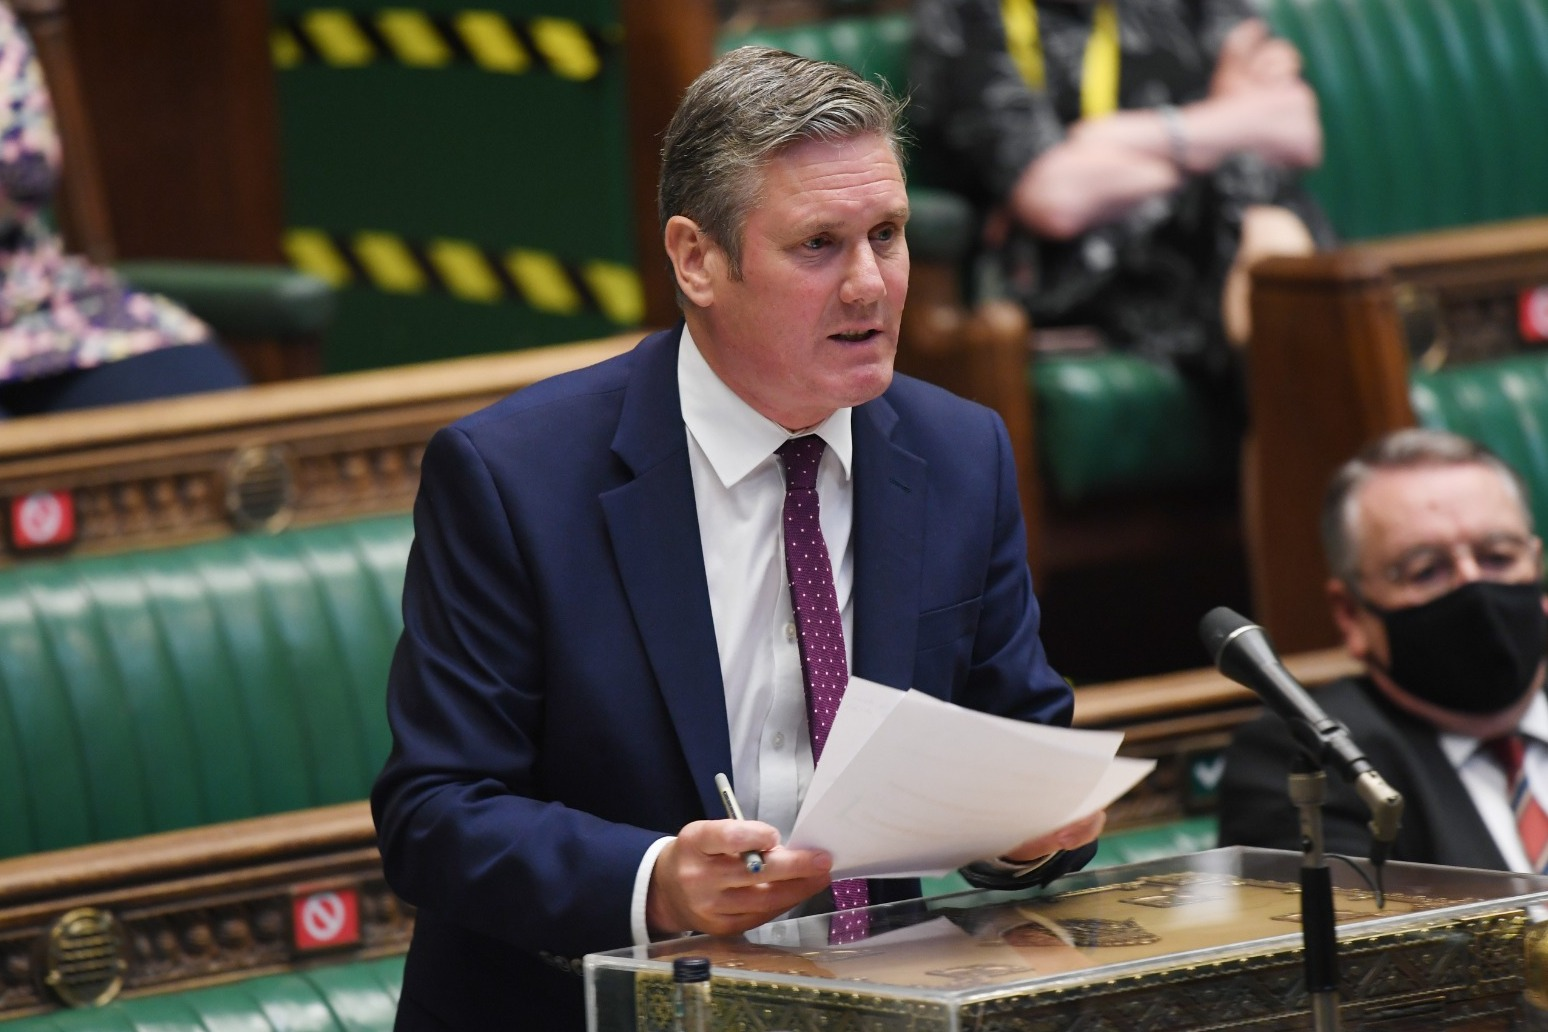 Starmer: Summer of chaos and confusion awaits under Johnson's unlock plans